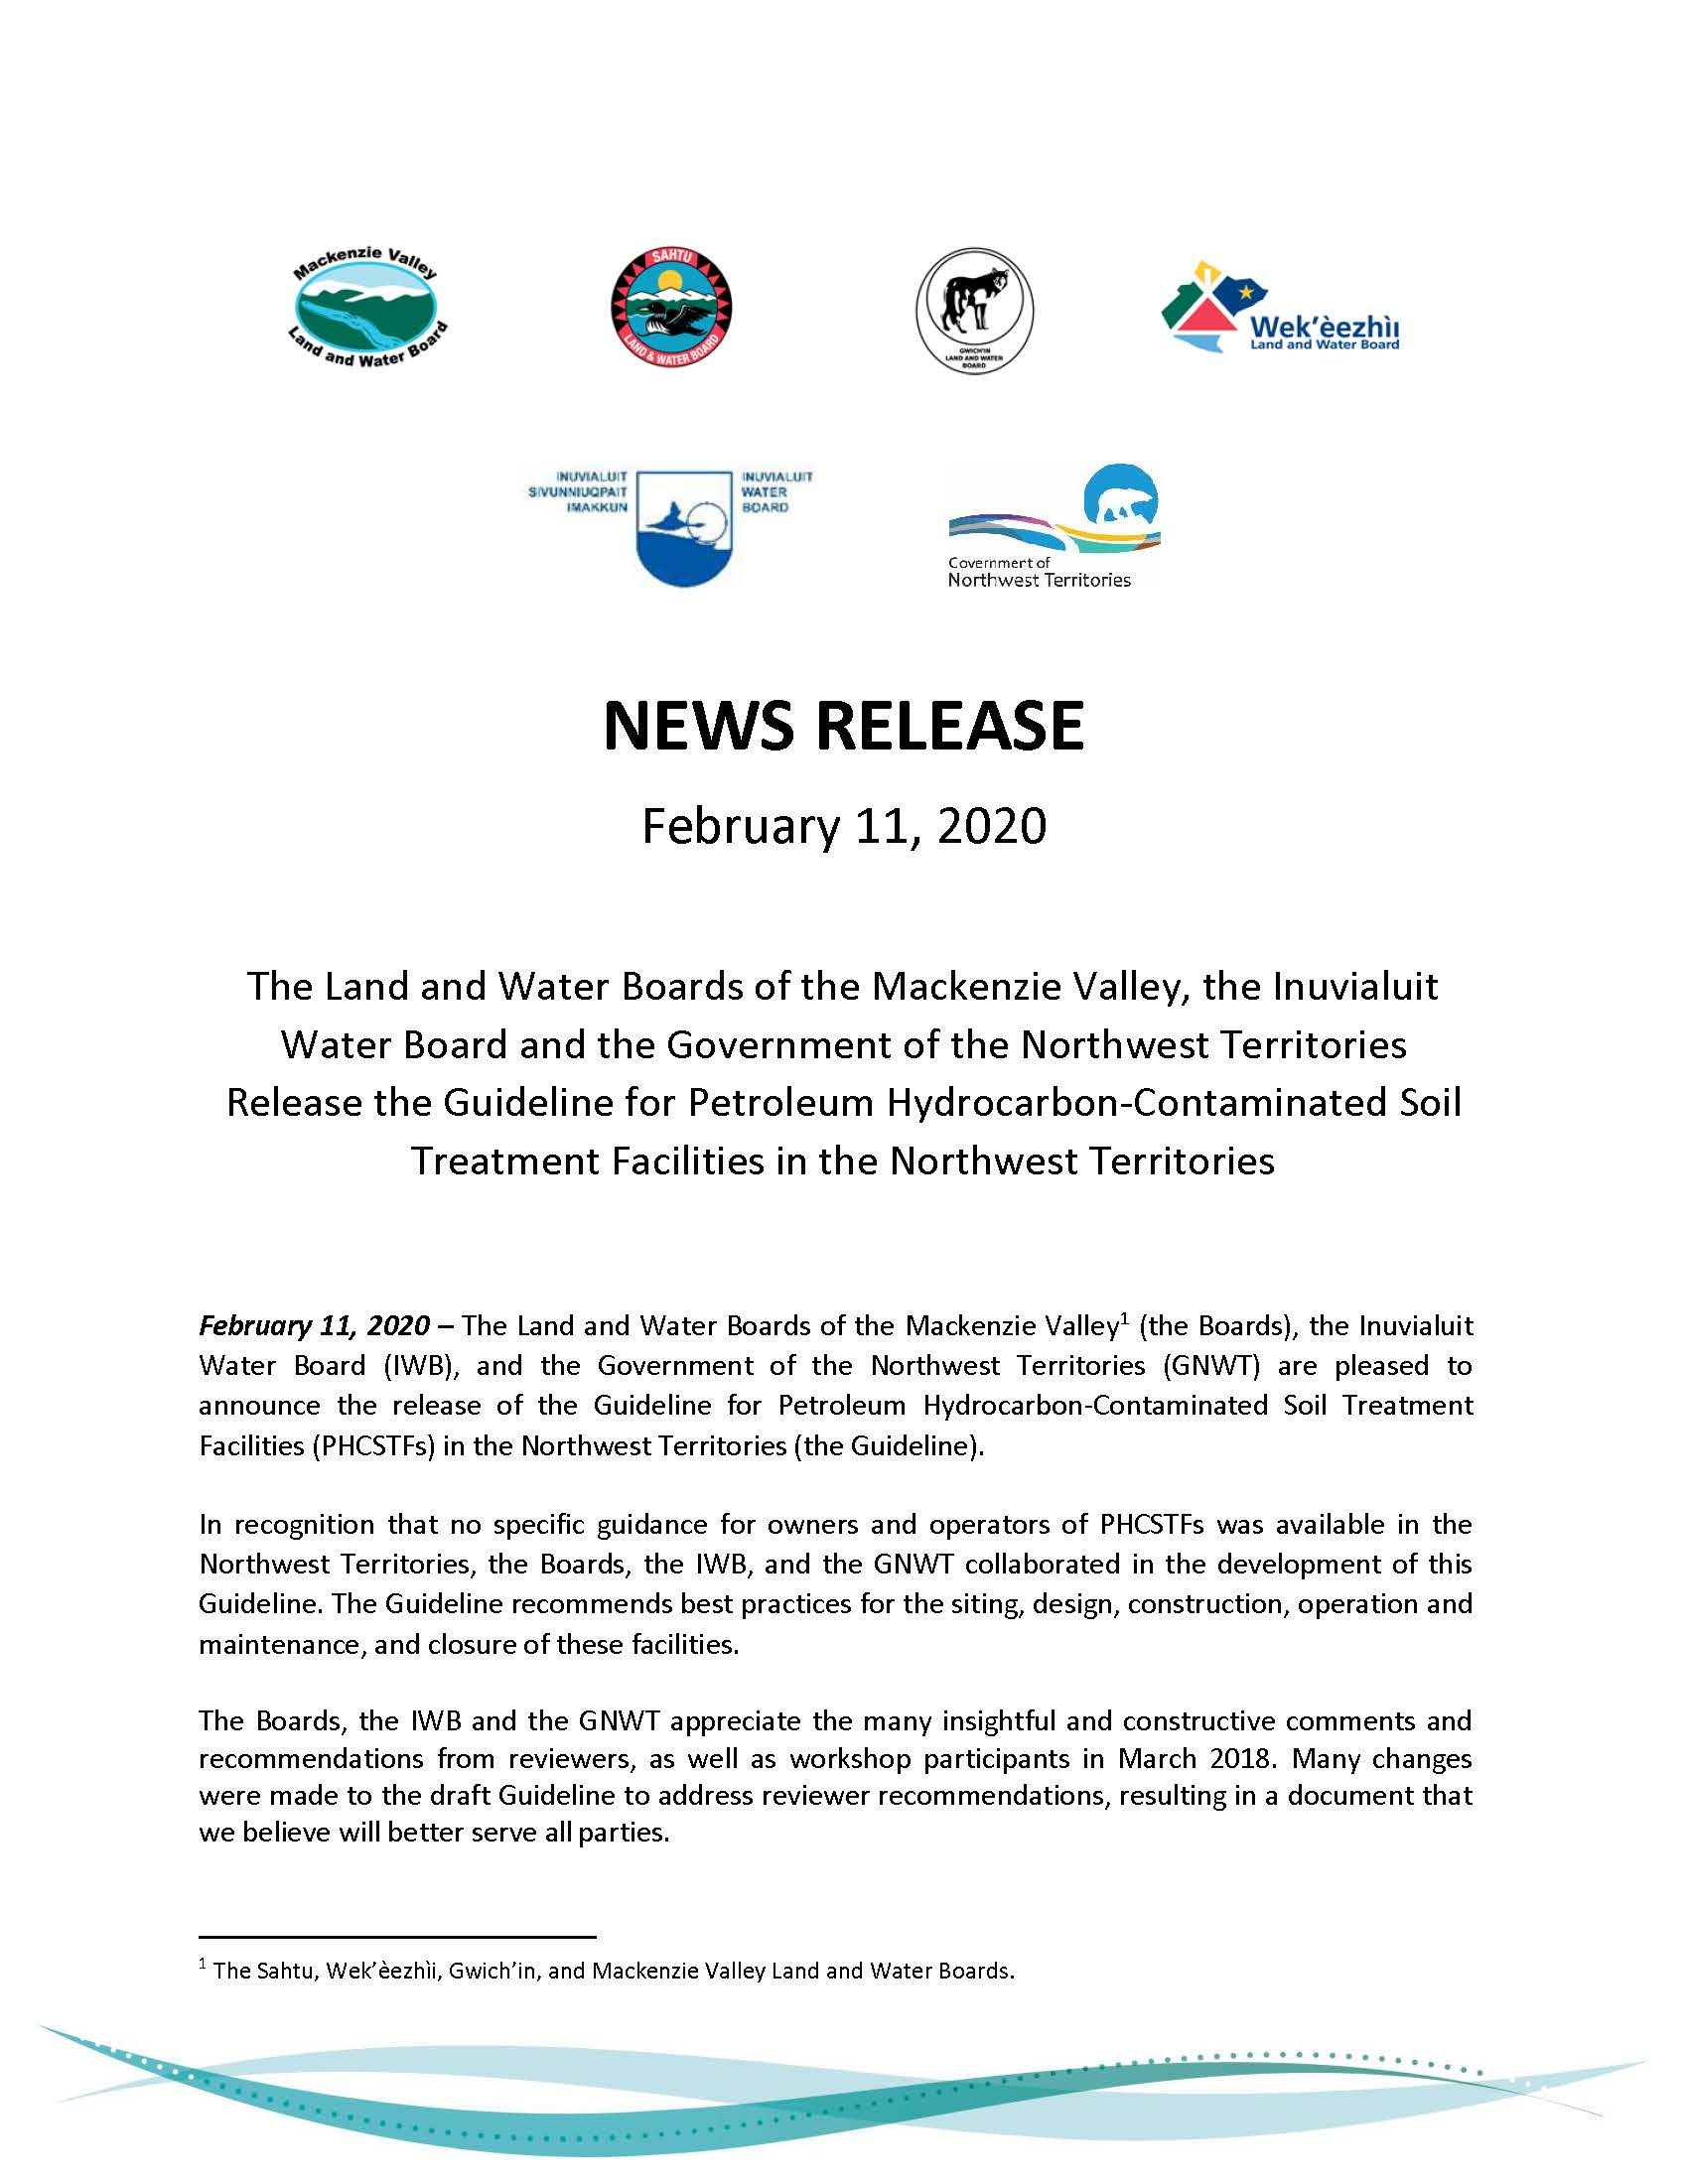 Media Release for PHCSTFS Guidelines in the NWT